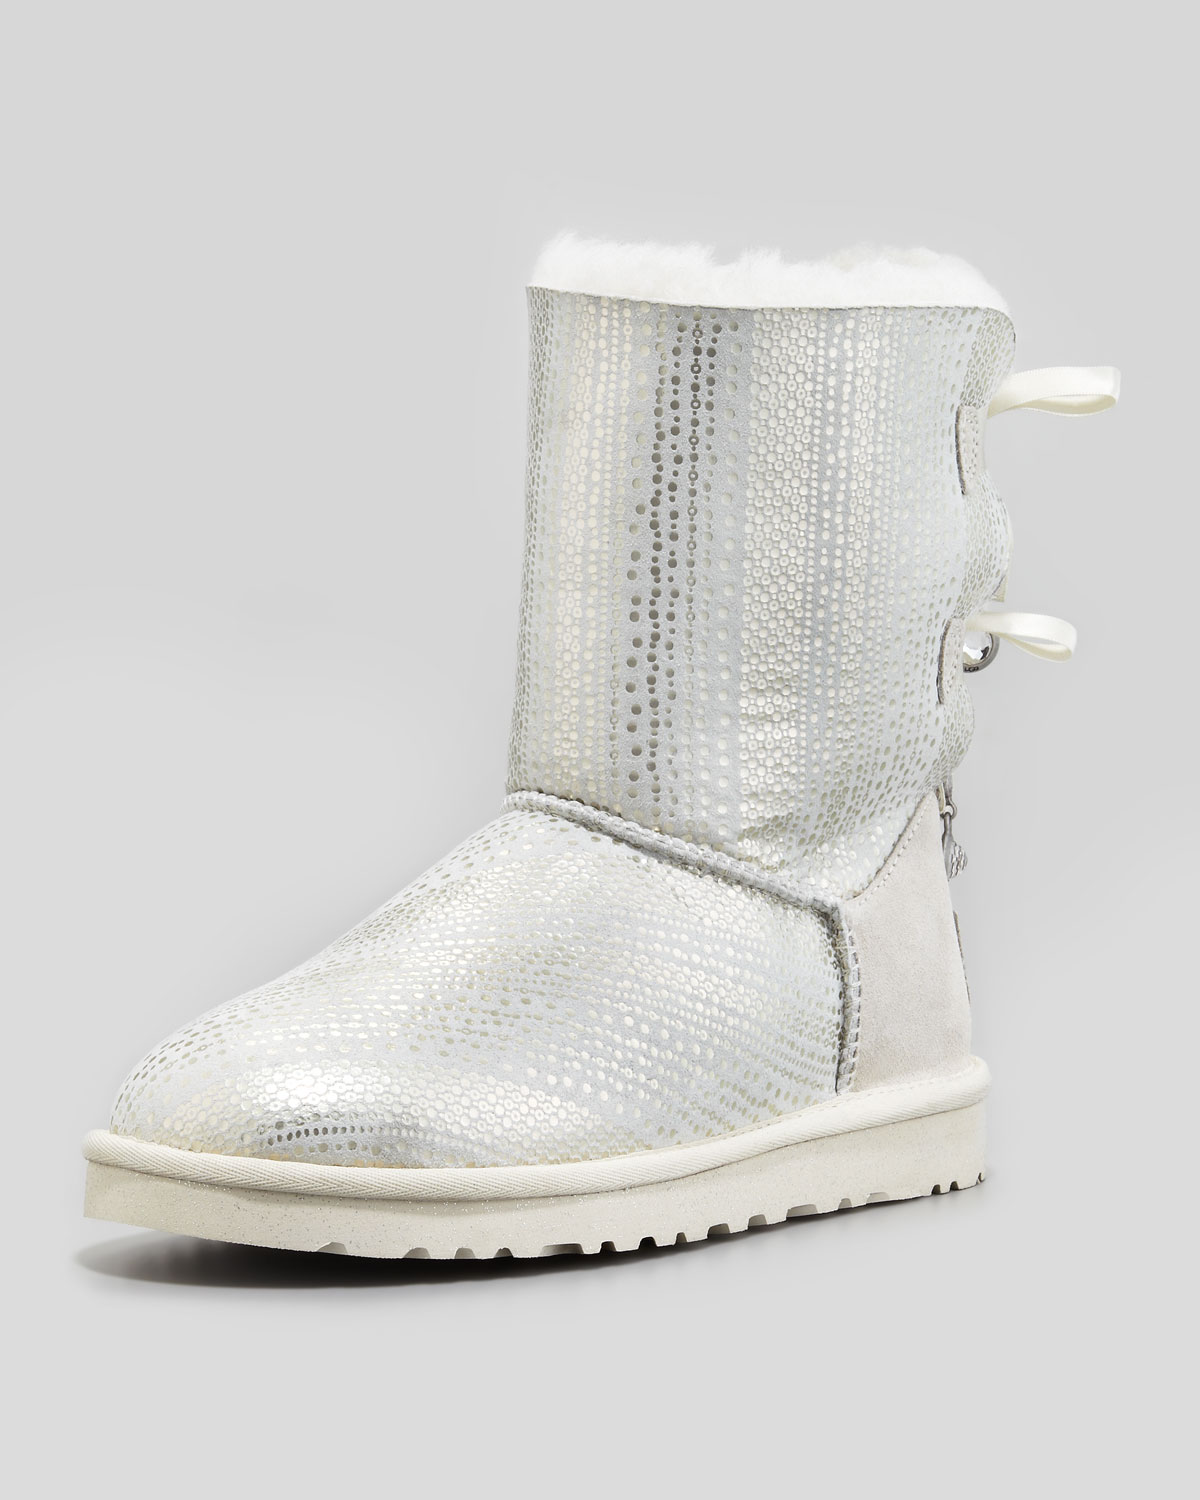 b0e0cebfb91 UGG Holiday Bailey Bowback Short Boot White in Metallic - Lyst